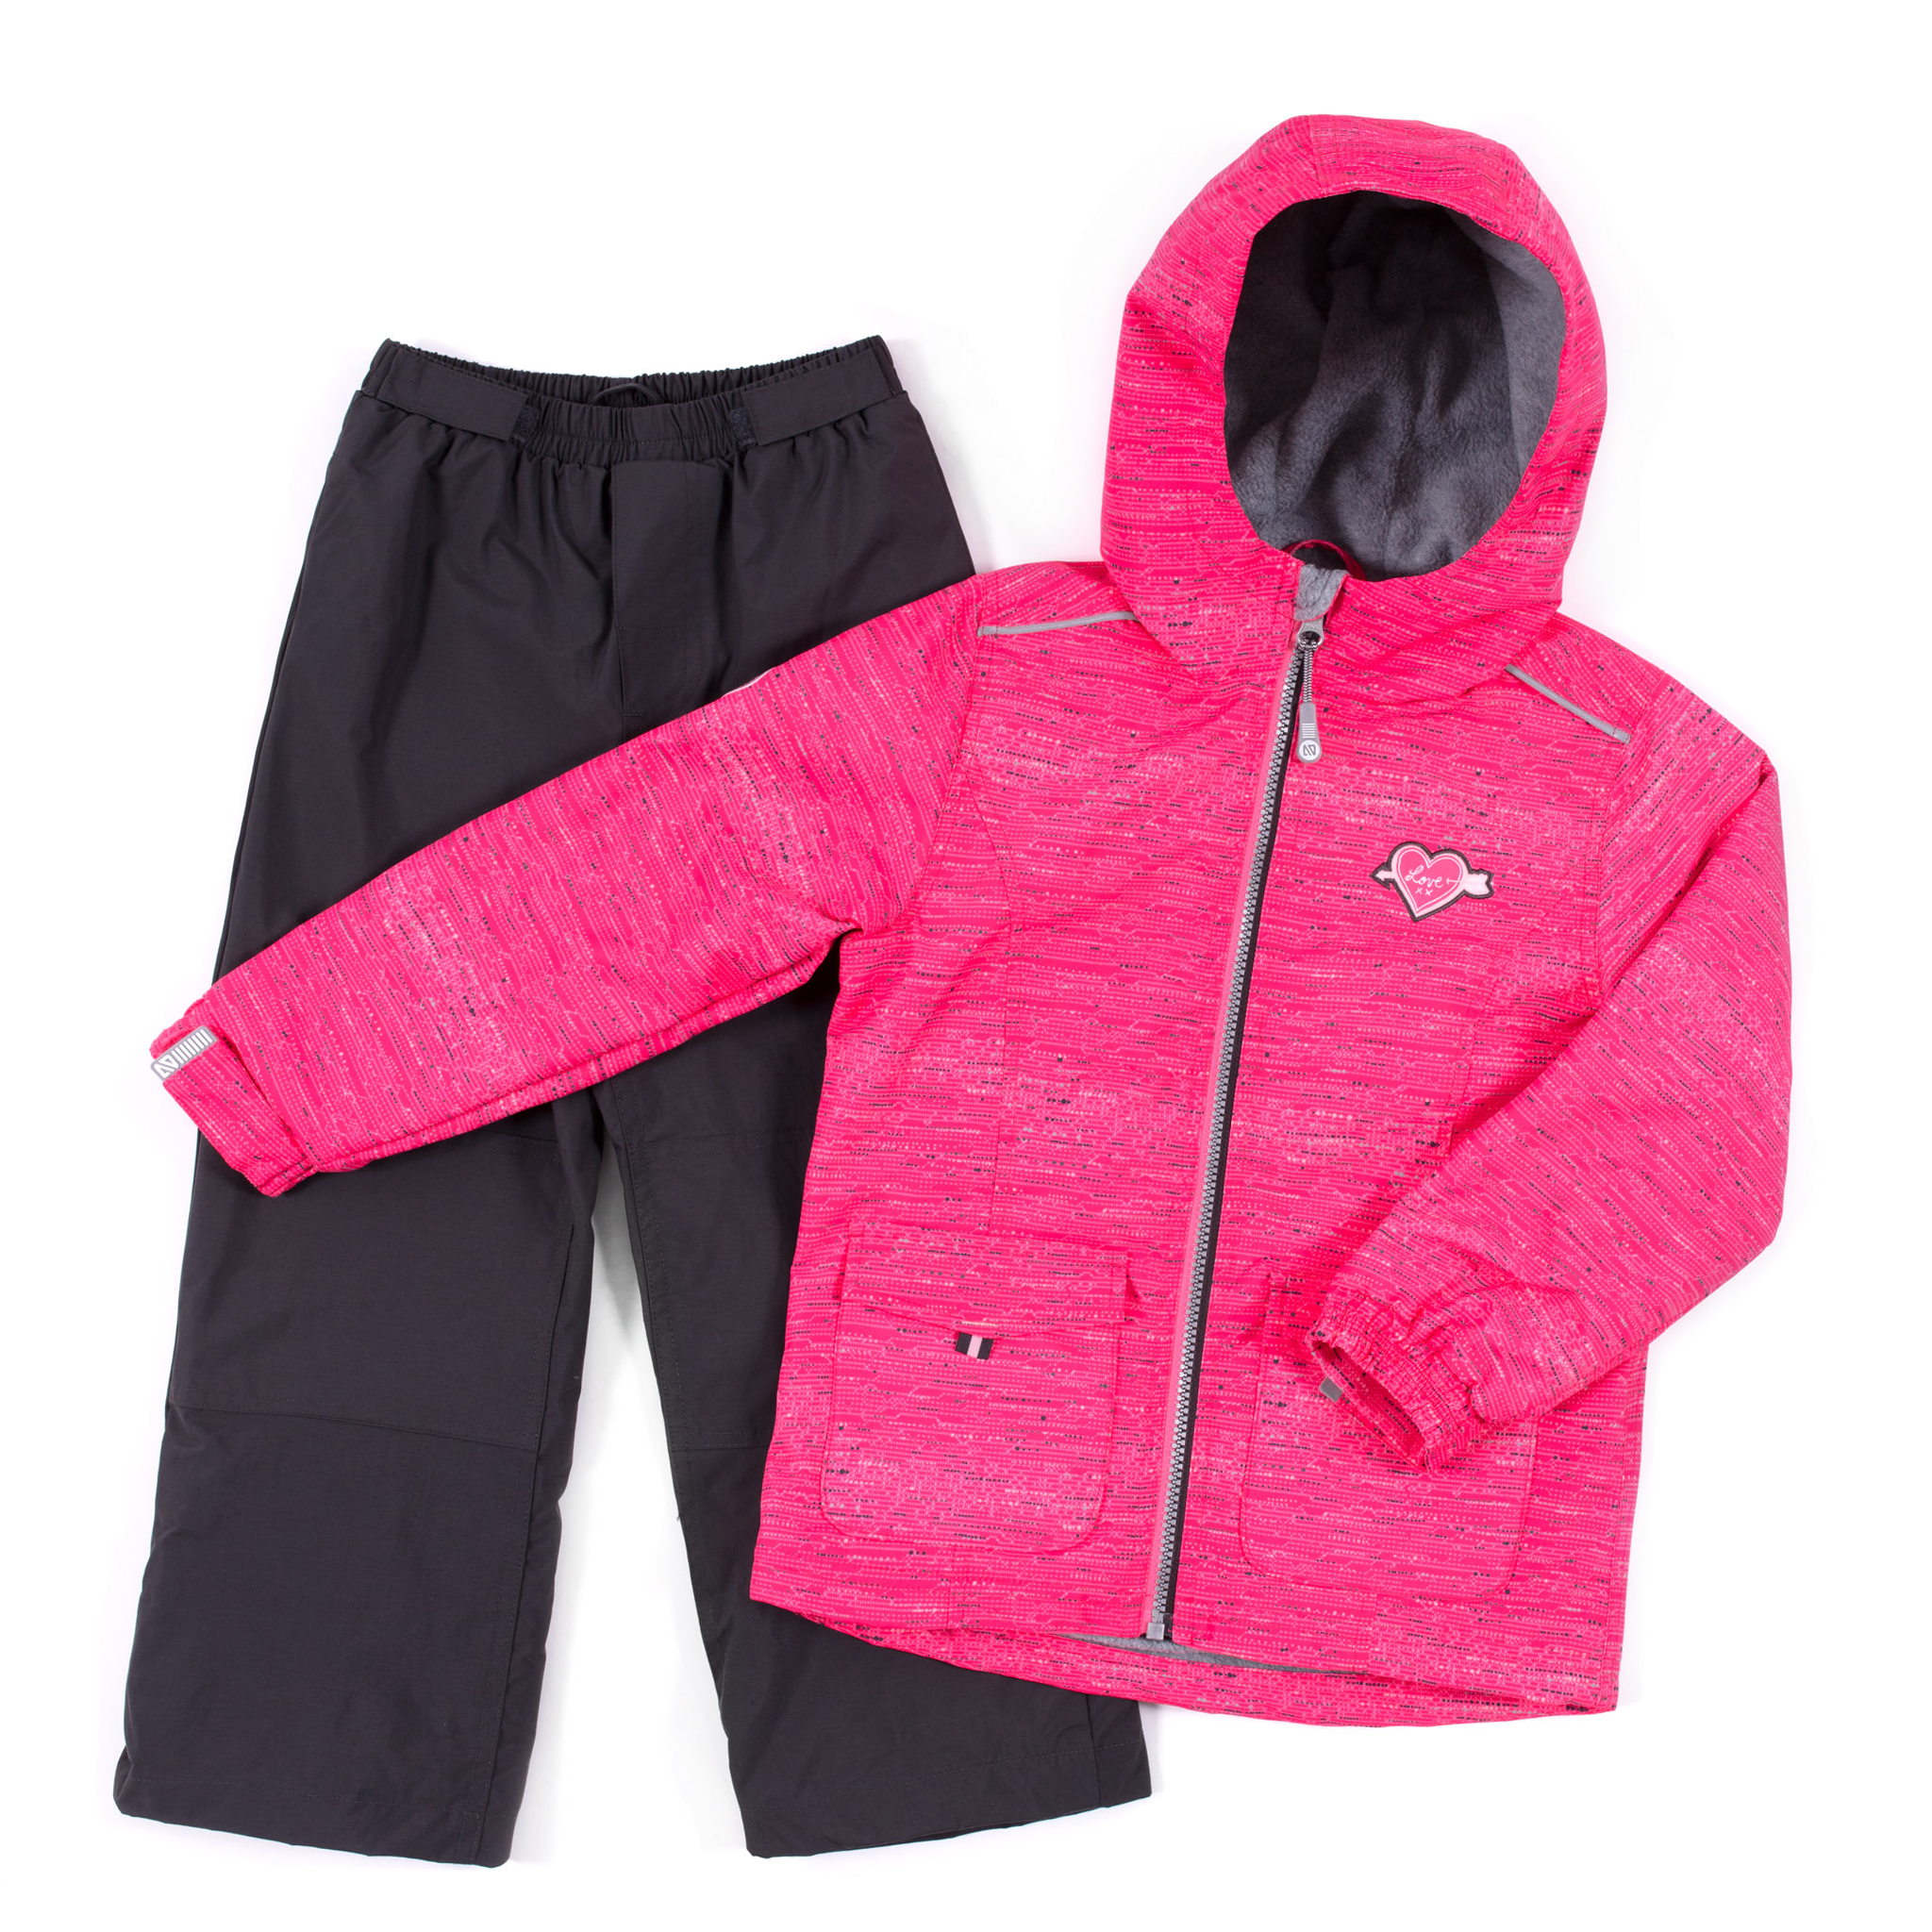 2 pcs outerwear Rome - Fuchsia - Girls